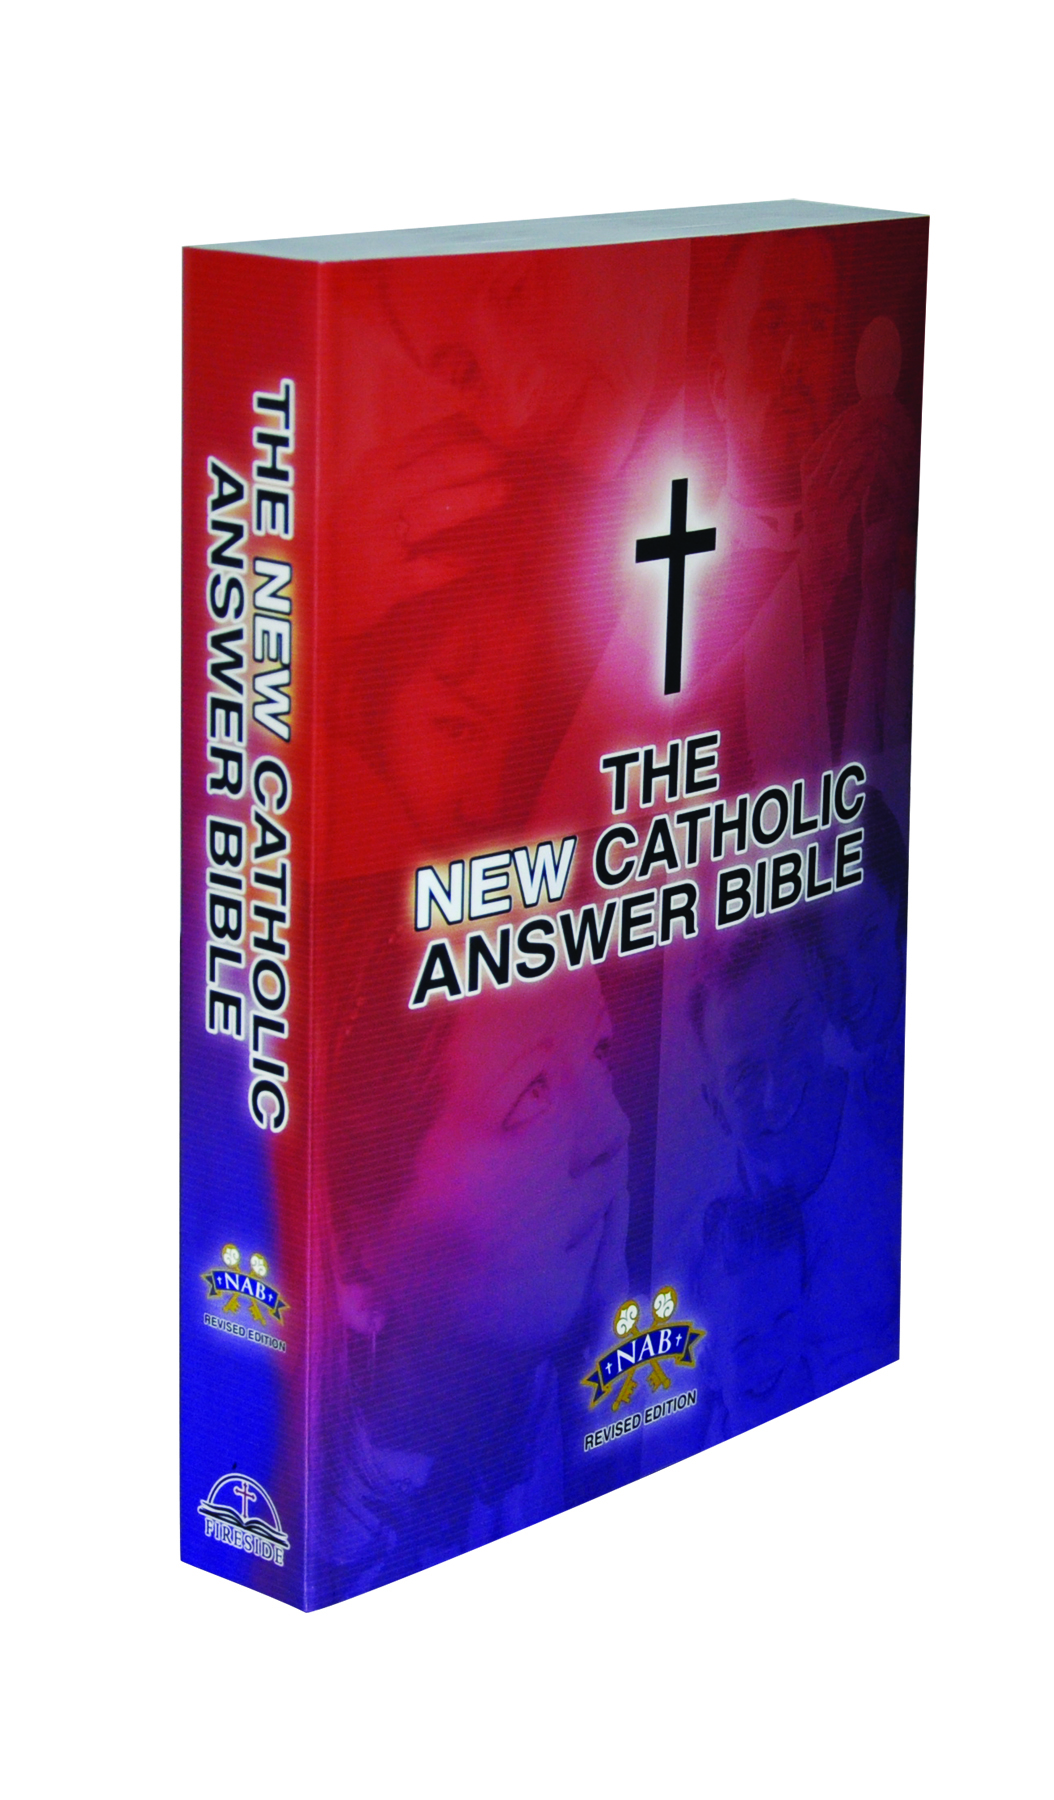 Softcover Catholic Answers Apologetics Bible